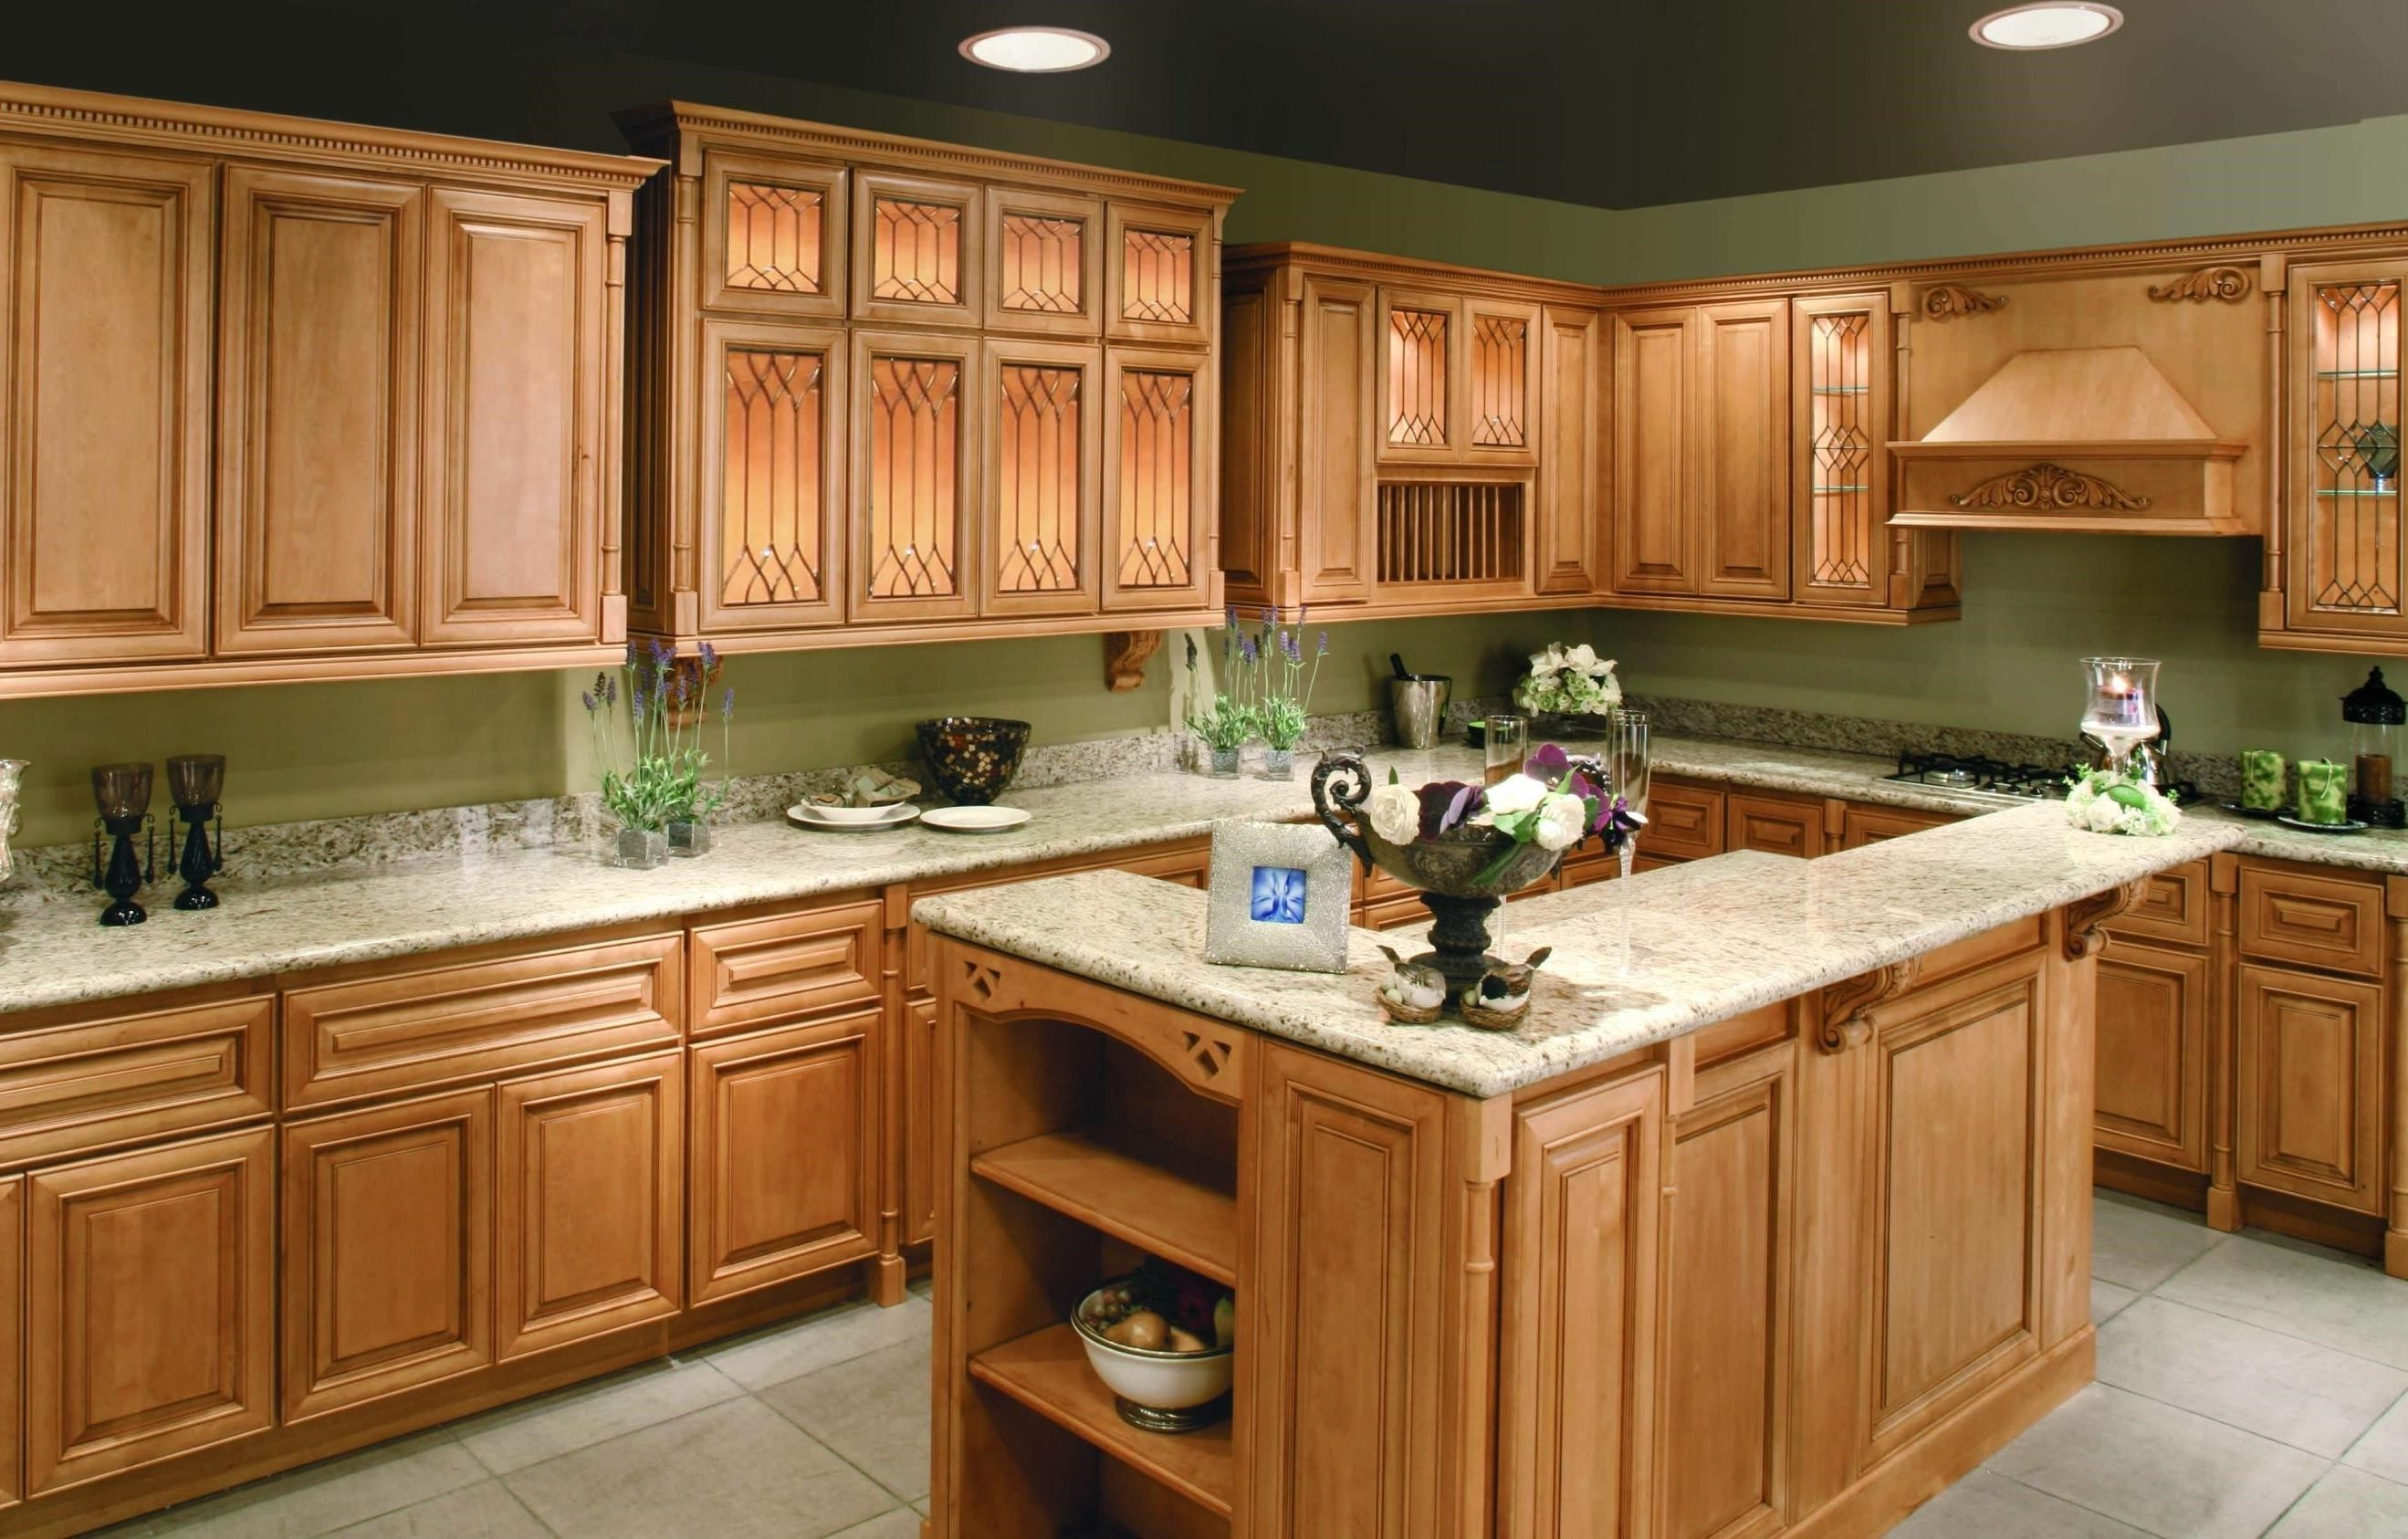 terrific kitchen colors light oak cabinets | Great Kitchen Paint Colors With Oak Cabinets And Stainless ...